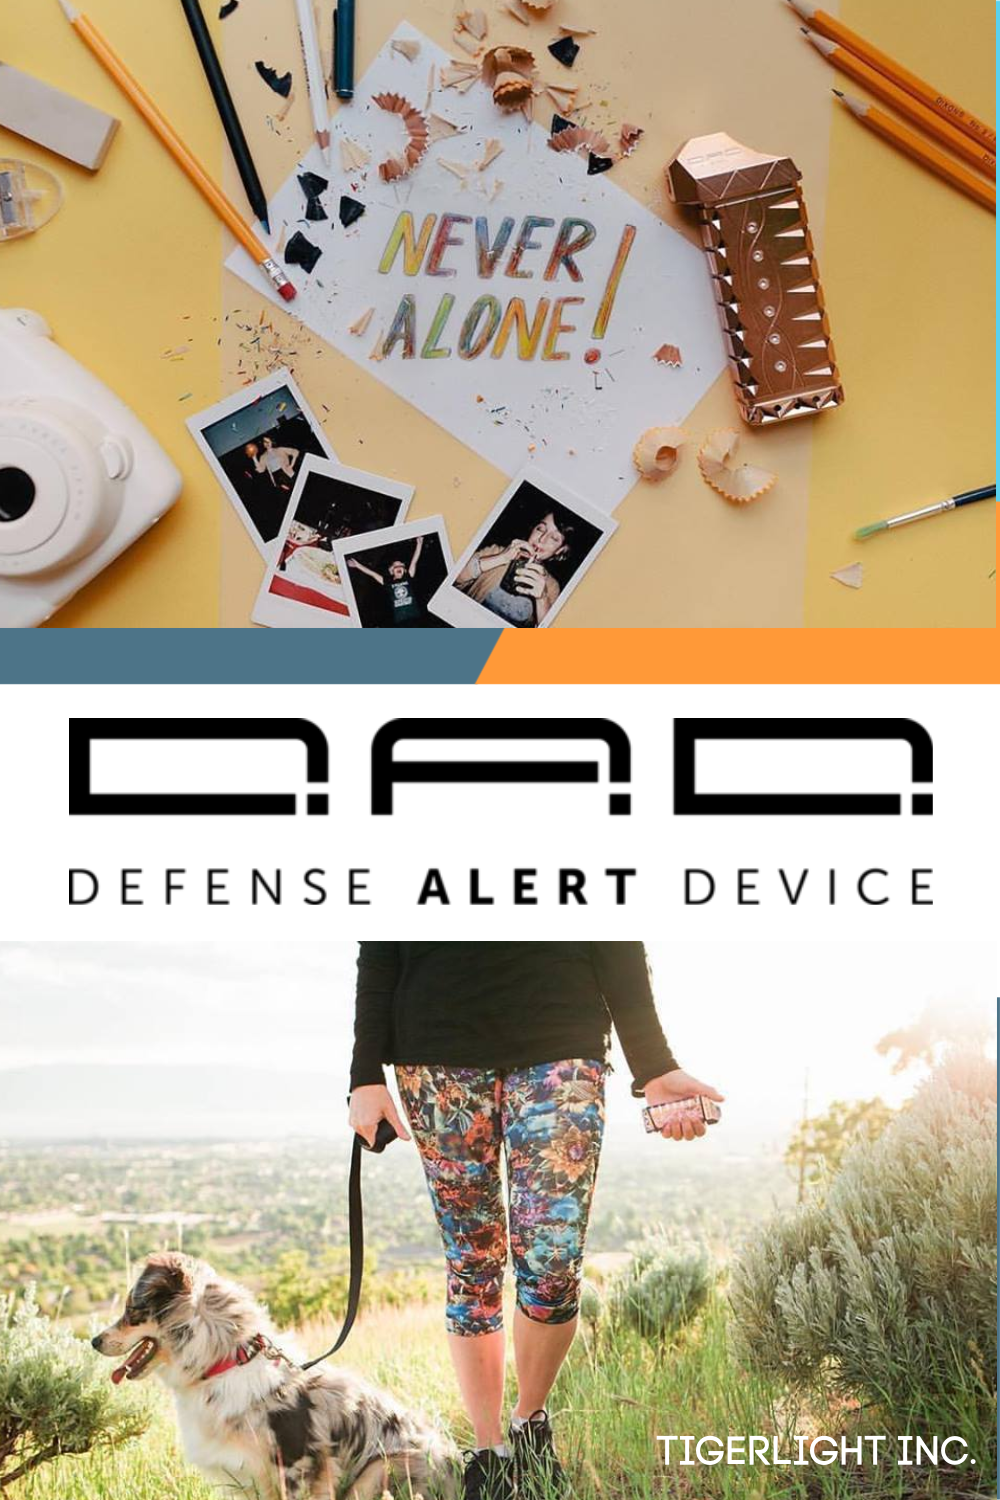 The D.A.D.® (Defense Alert Device) is the first non-lethal personal safety device with smart technology. Each device is equipped with Bluetooth to send an emergency alert via your cell phone. #Tigerlight #BeBold #NeverAlone